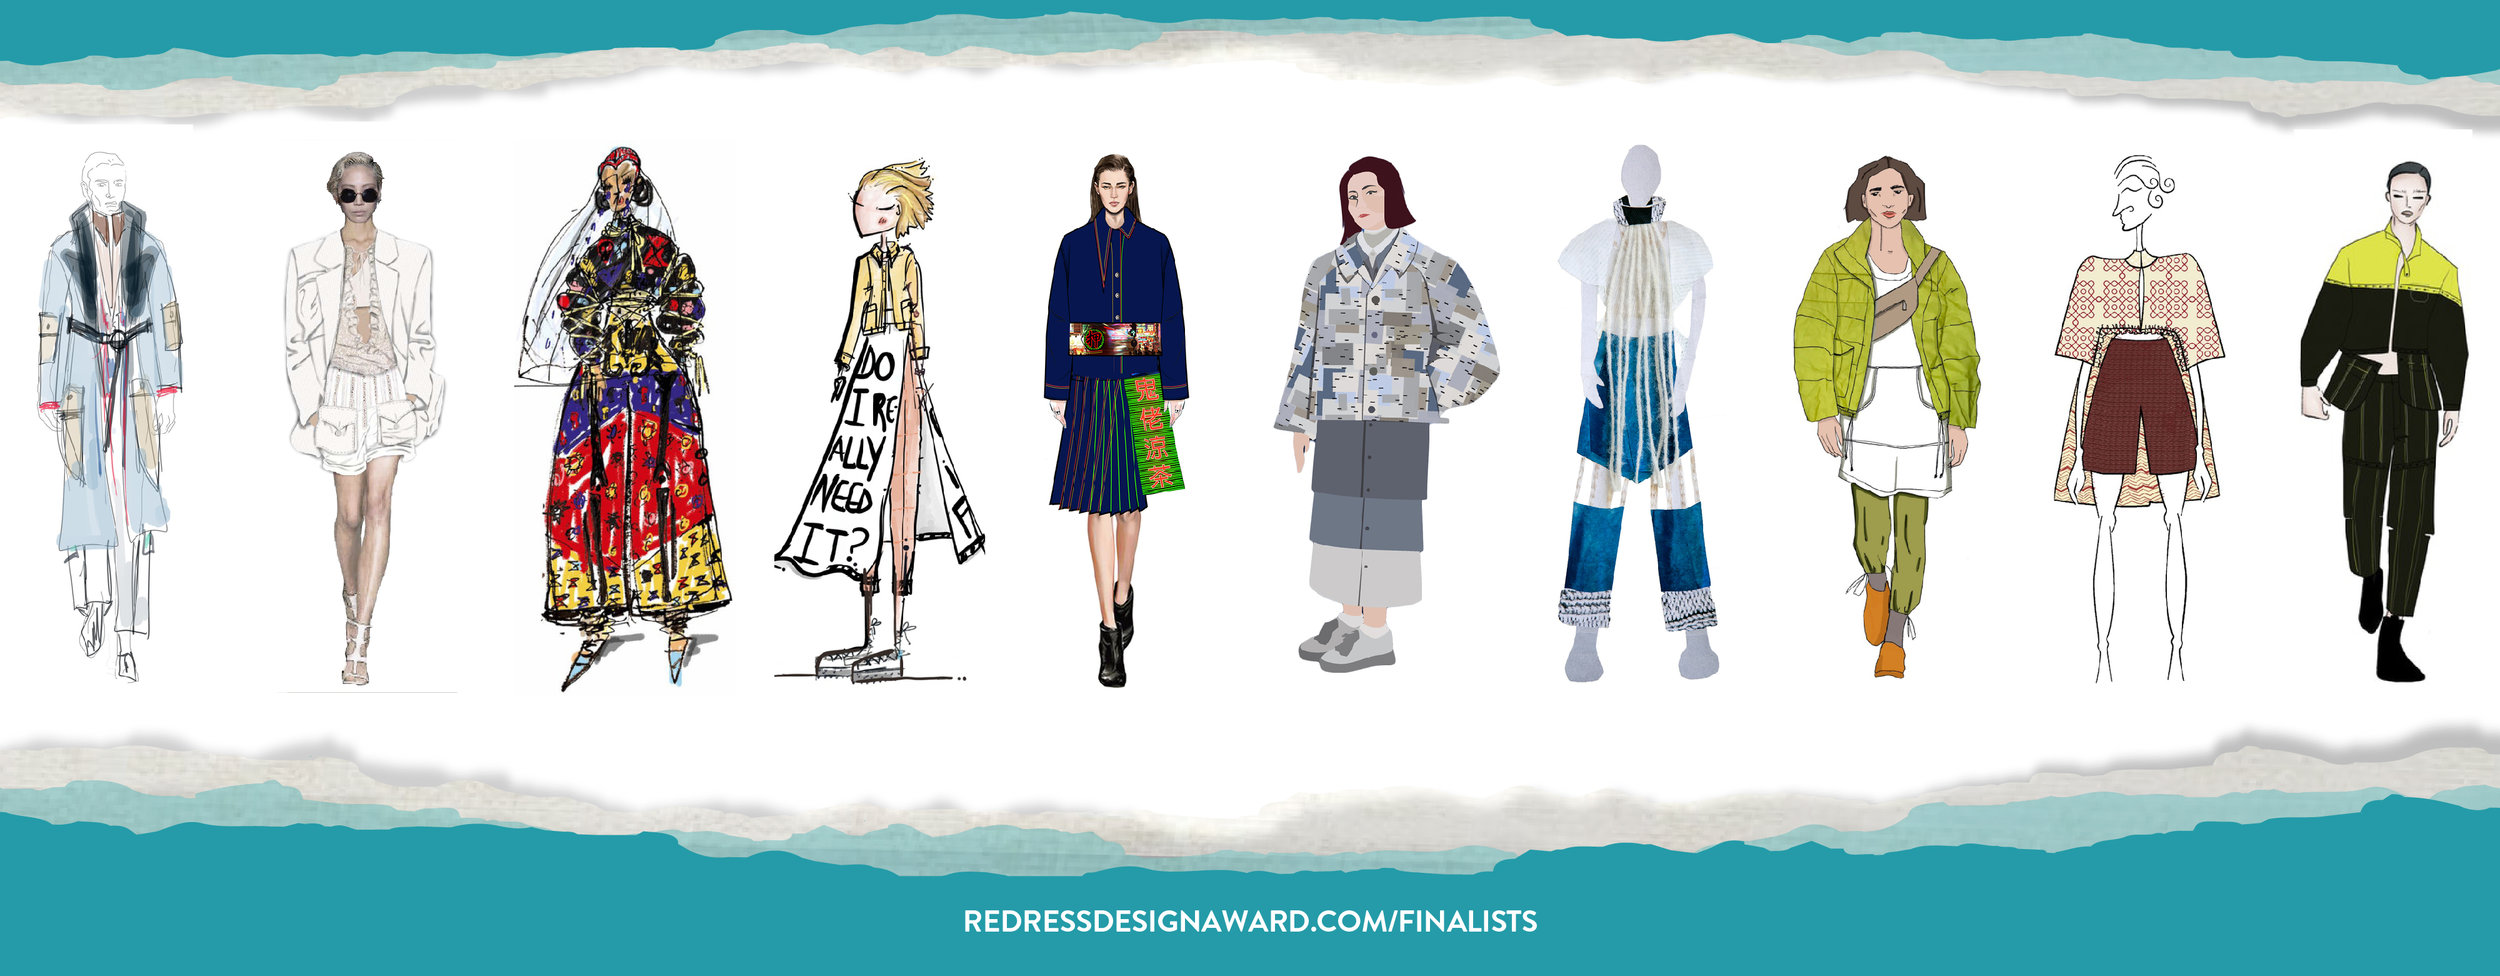 REDRESS DESIGN AWARD 2019 FINALISTS ANNOUNCED!